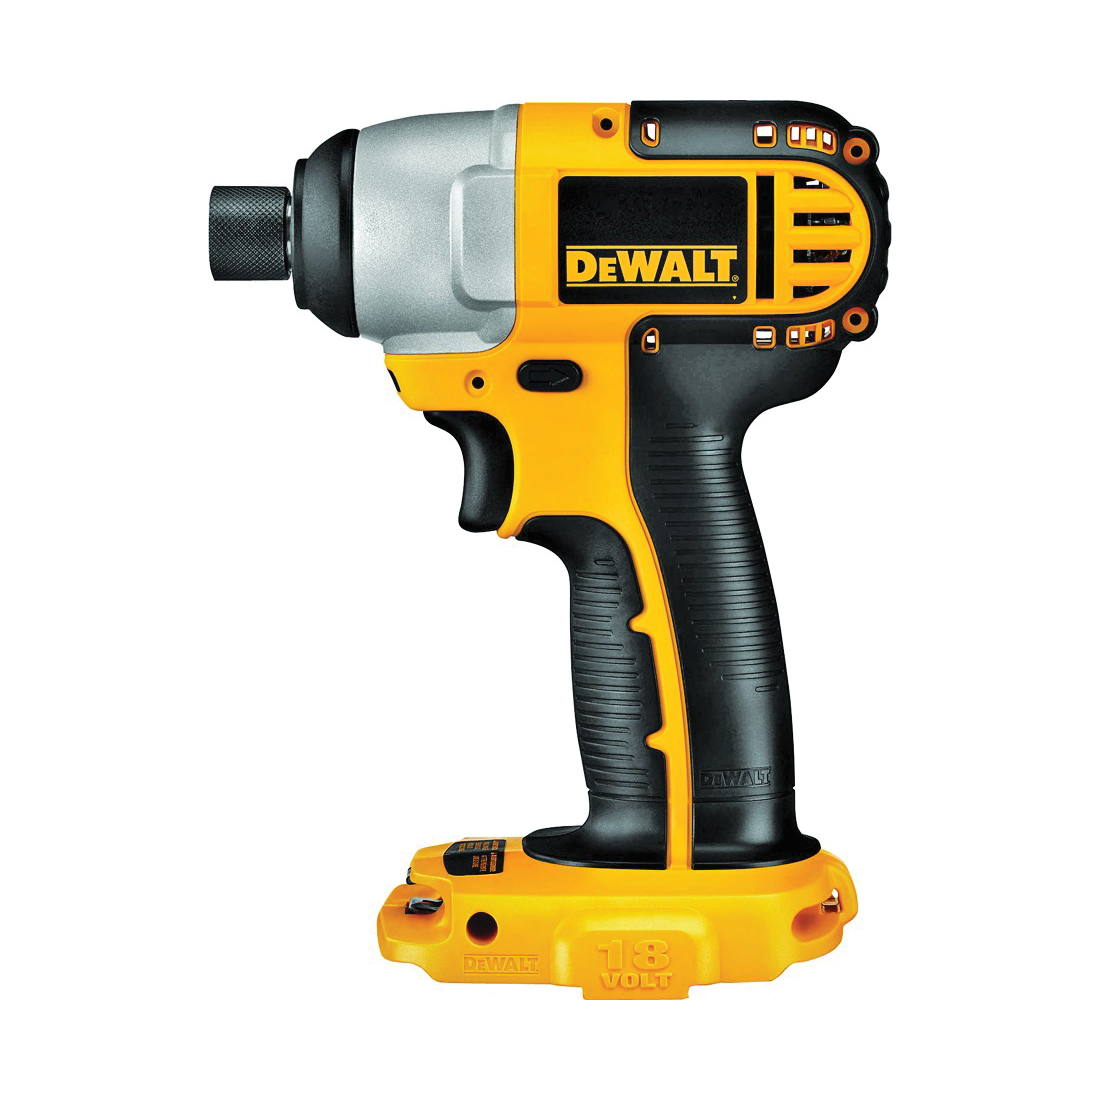 Picture of DeWALT DC825B Impact Driver, Bare Tool, 18 V Battery, 2.4 Ah, 1/4 in Drive, Hex Drive, 2700 ipm IPM